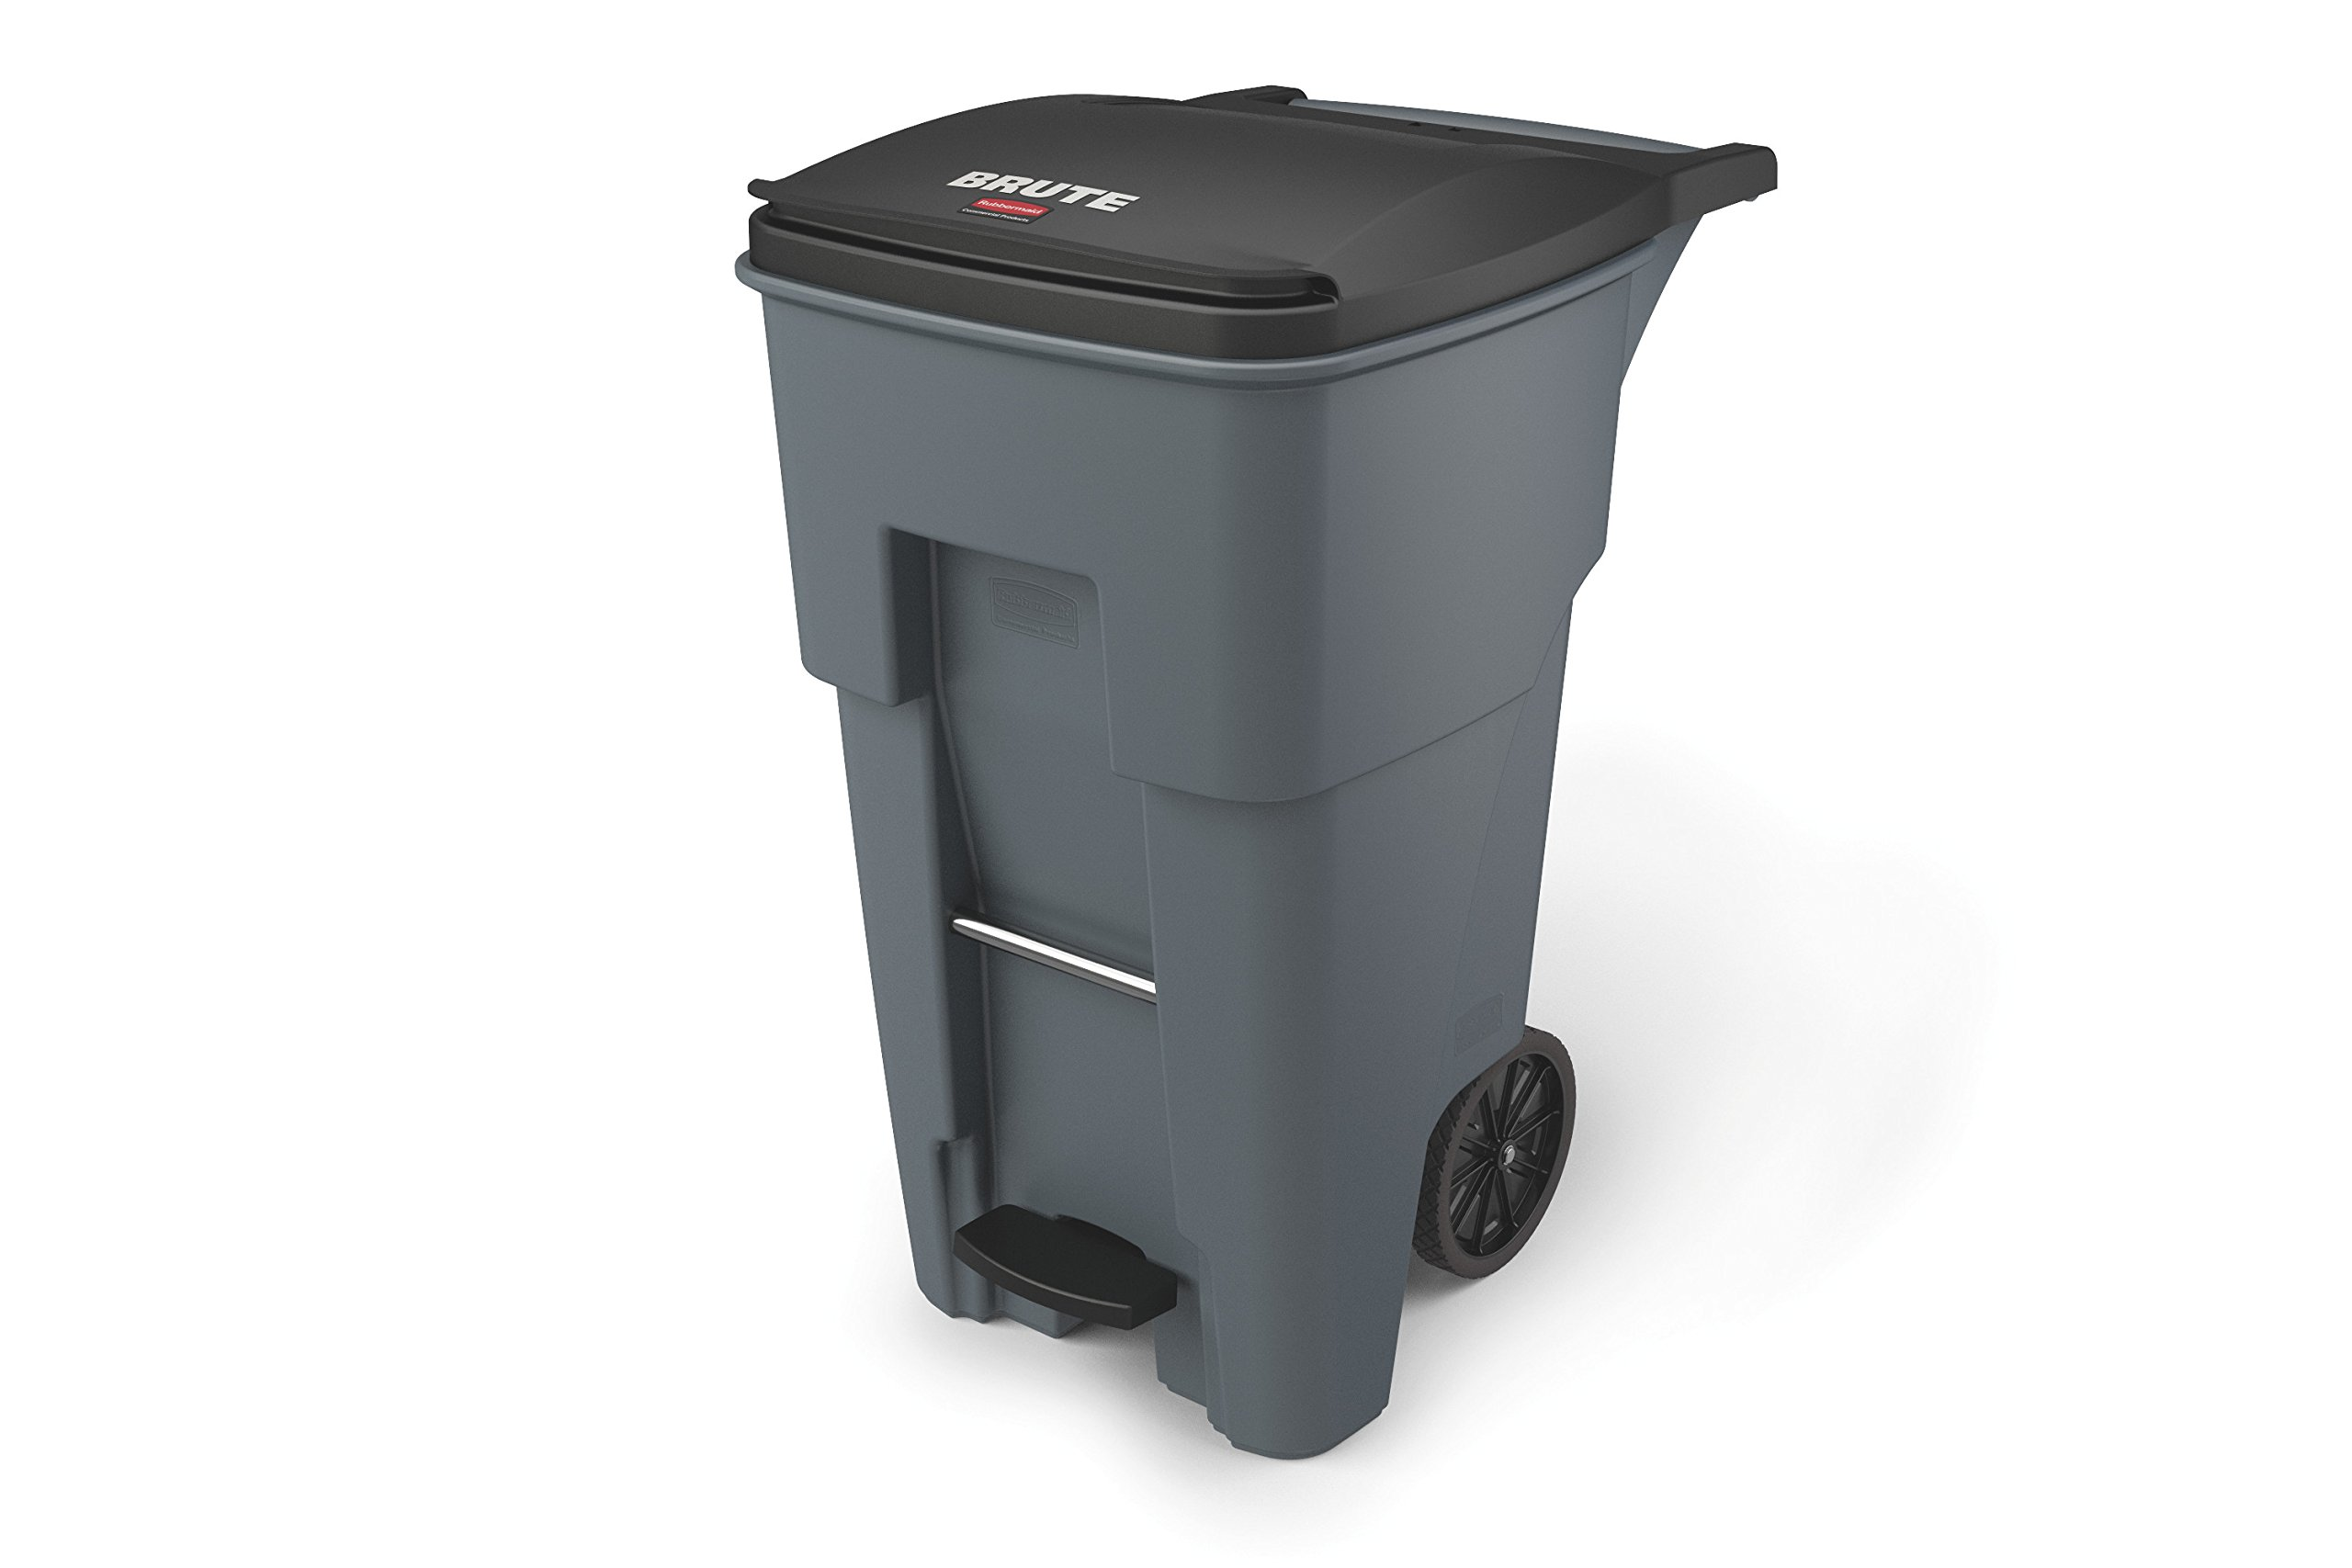 Rubbermaid Commercial 1971968 Brute Step-On Rollout Trash Can, 65 gal/246 L, 44.740'' Height, 25.330'' Width, Gray by Rubbermaid Commercial